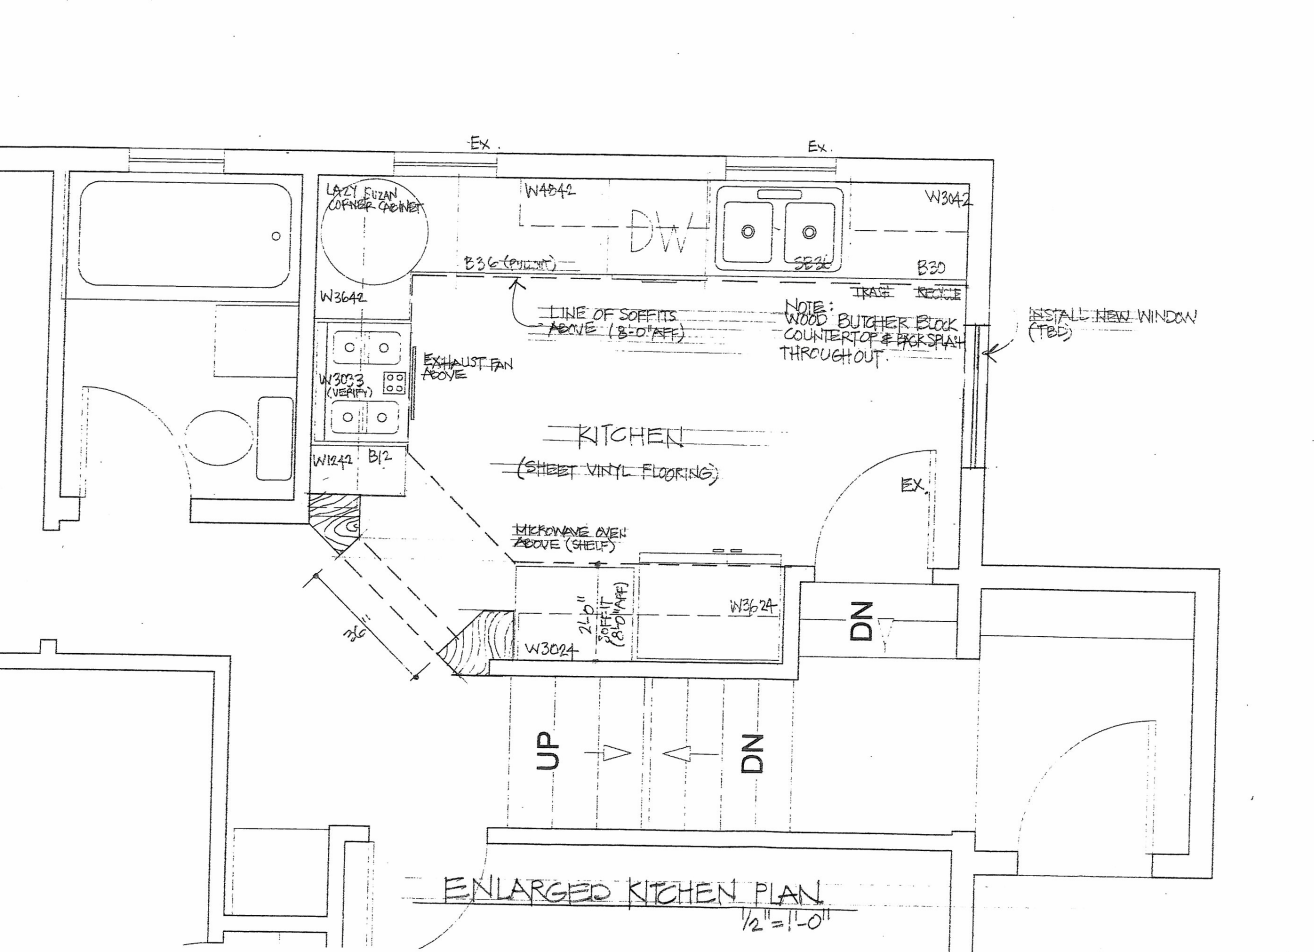 Example of a structural plan. Notice how a set of instructions was added to this plan. This process is called red-lining. For this plan to be official it would need a licensed professional engineer's stamp and signature.